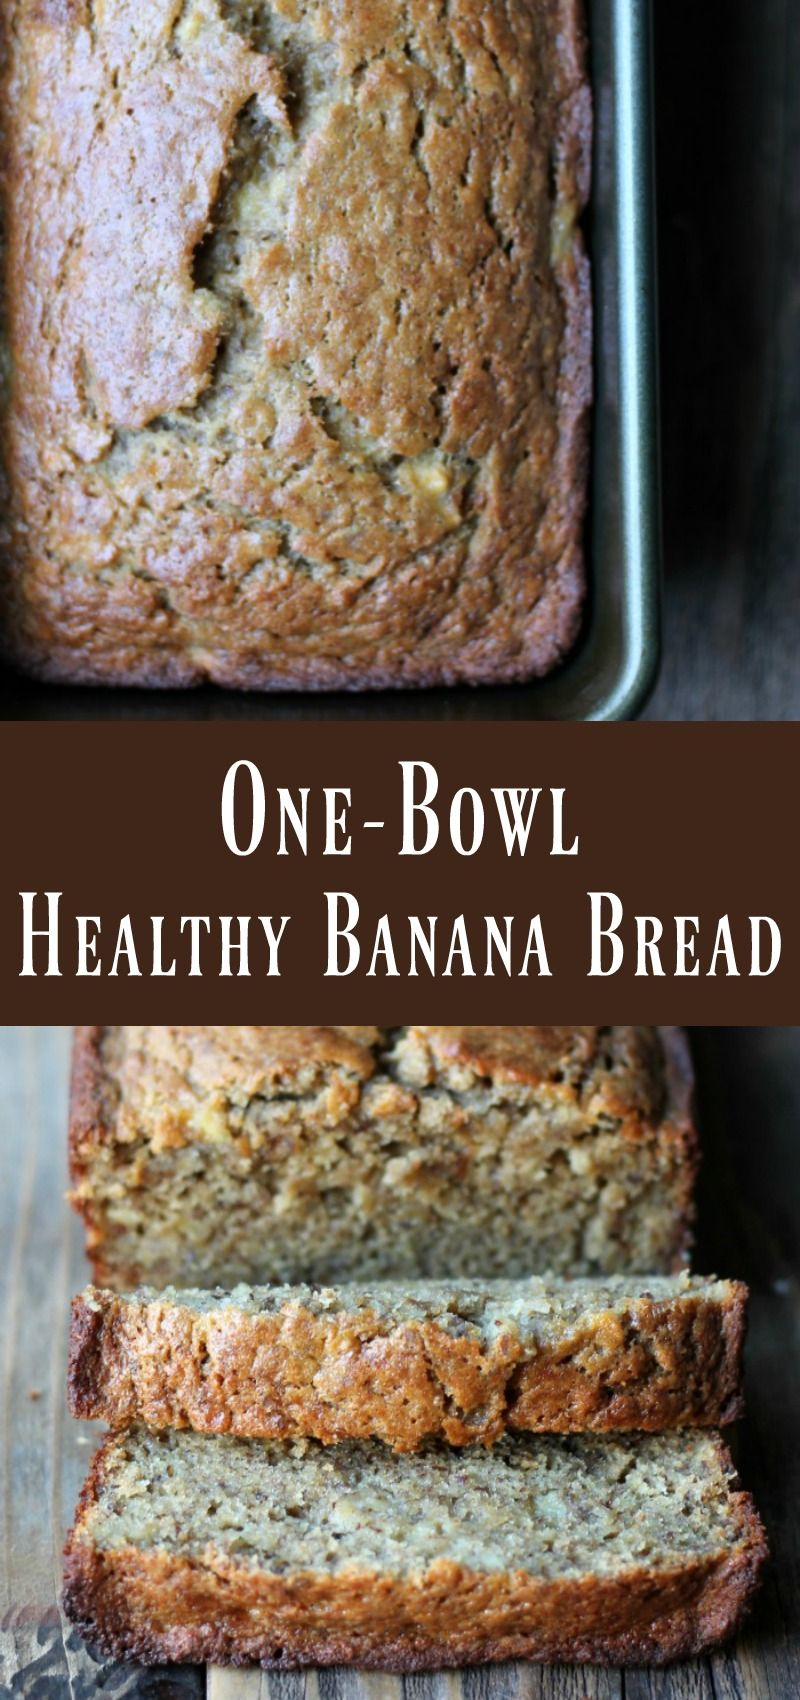 One-bowl Healthy Banana Bread #healthyfood